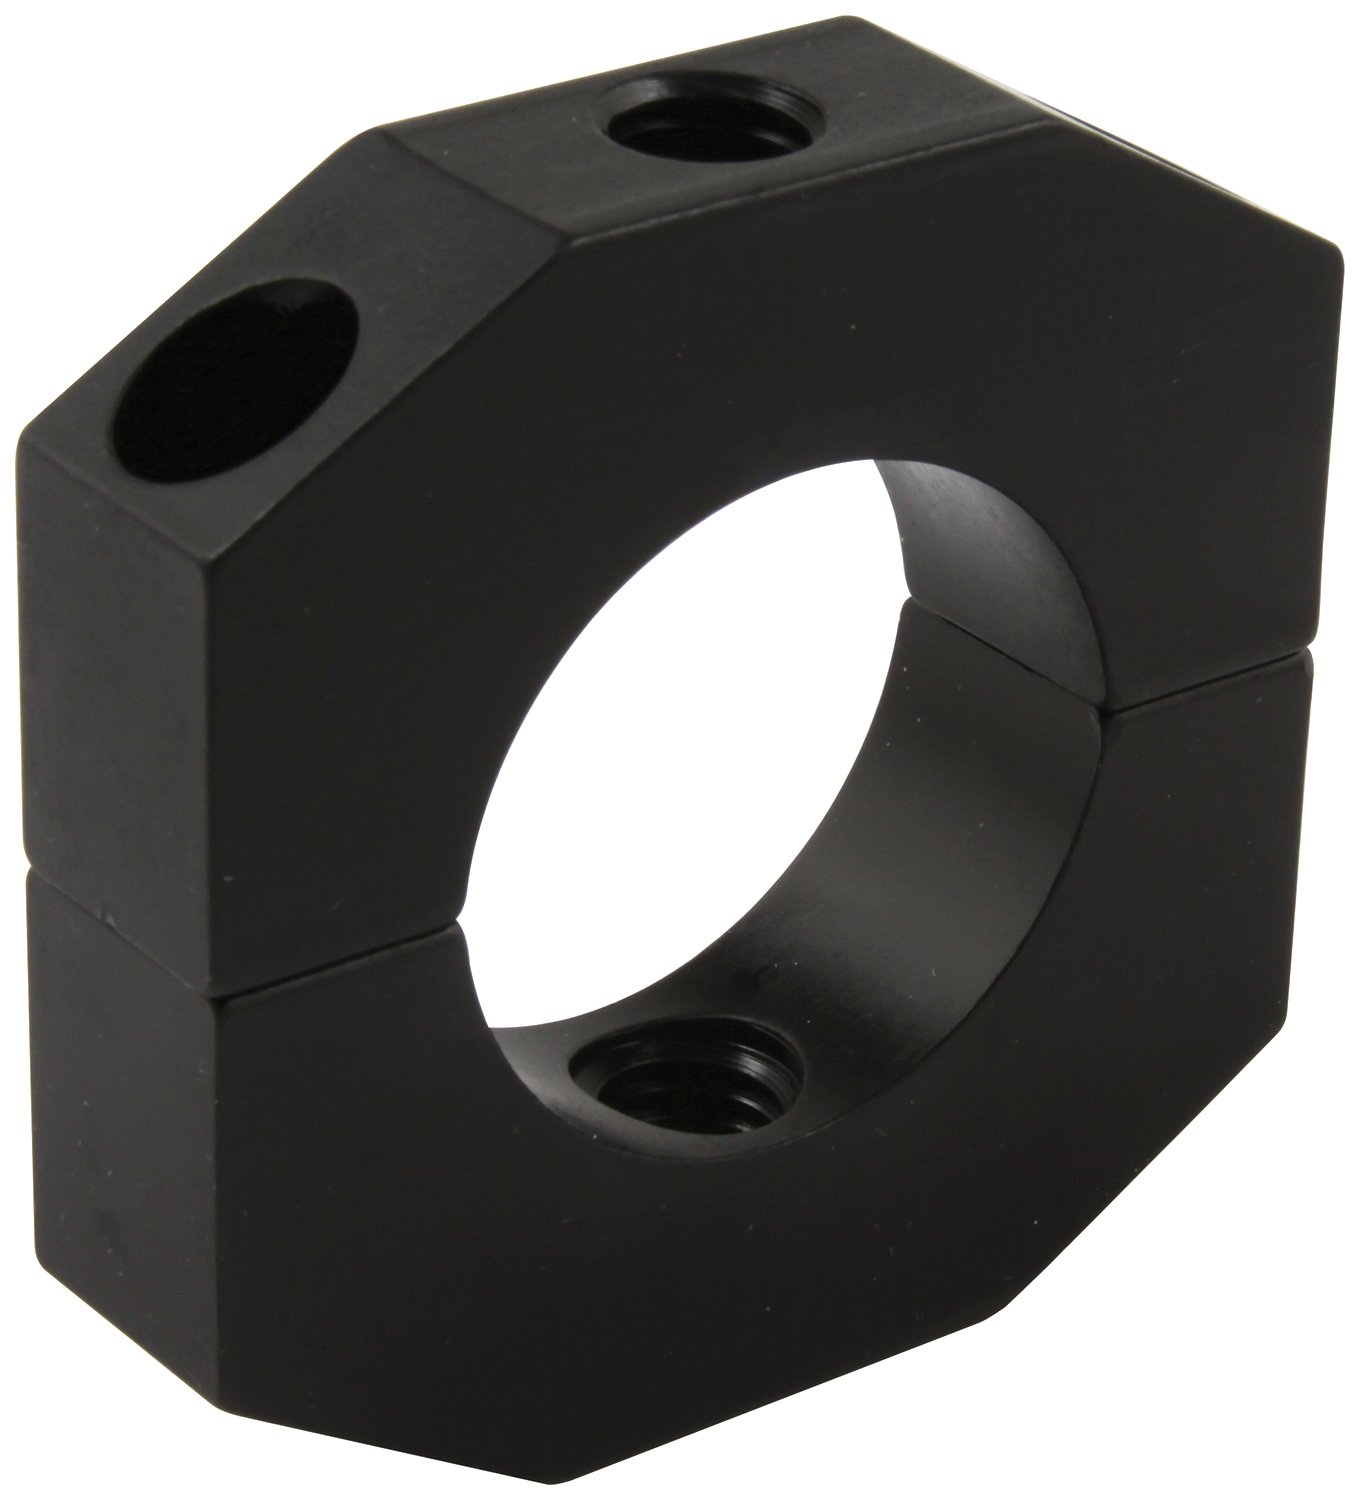 Allstar ALL14187-20 Black Anodized Aluminum Ballast Bracket for 1.75'' Round Tubing - 20 Piece